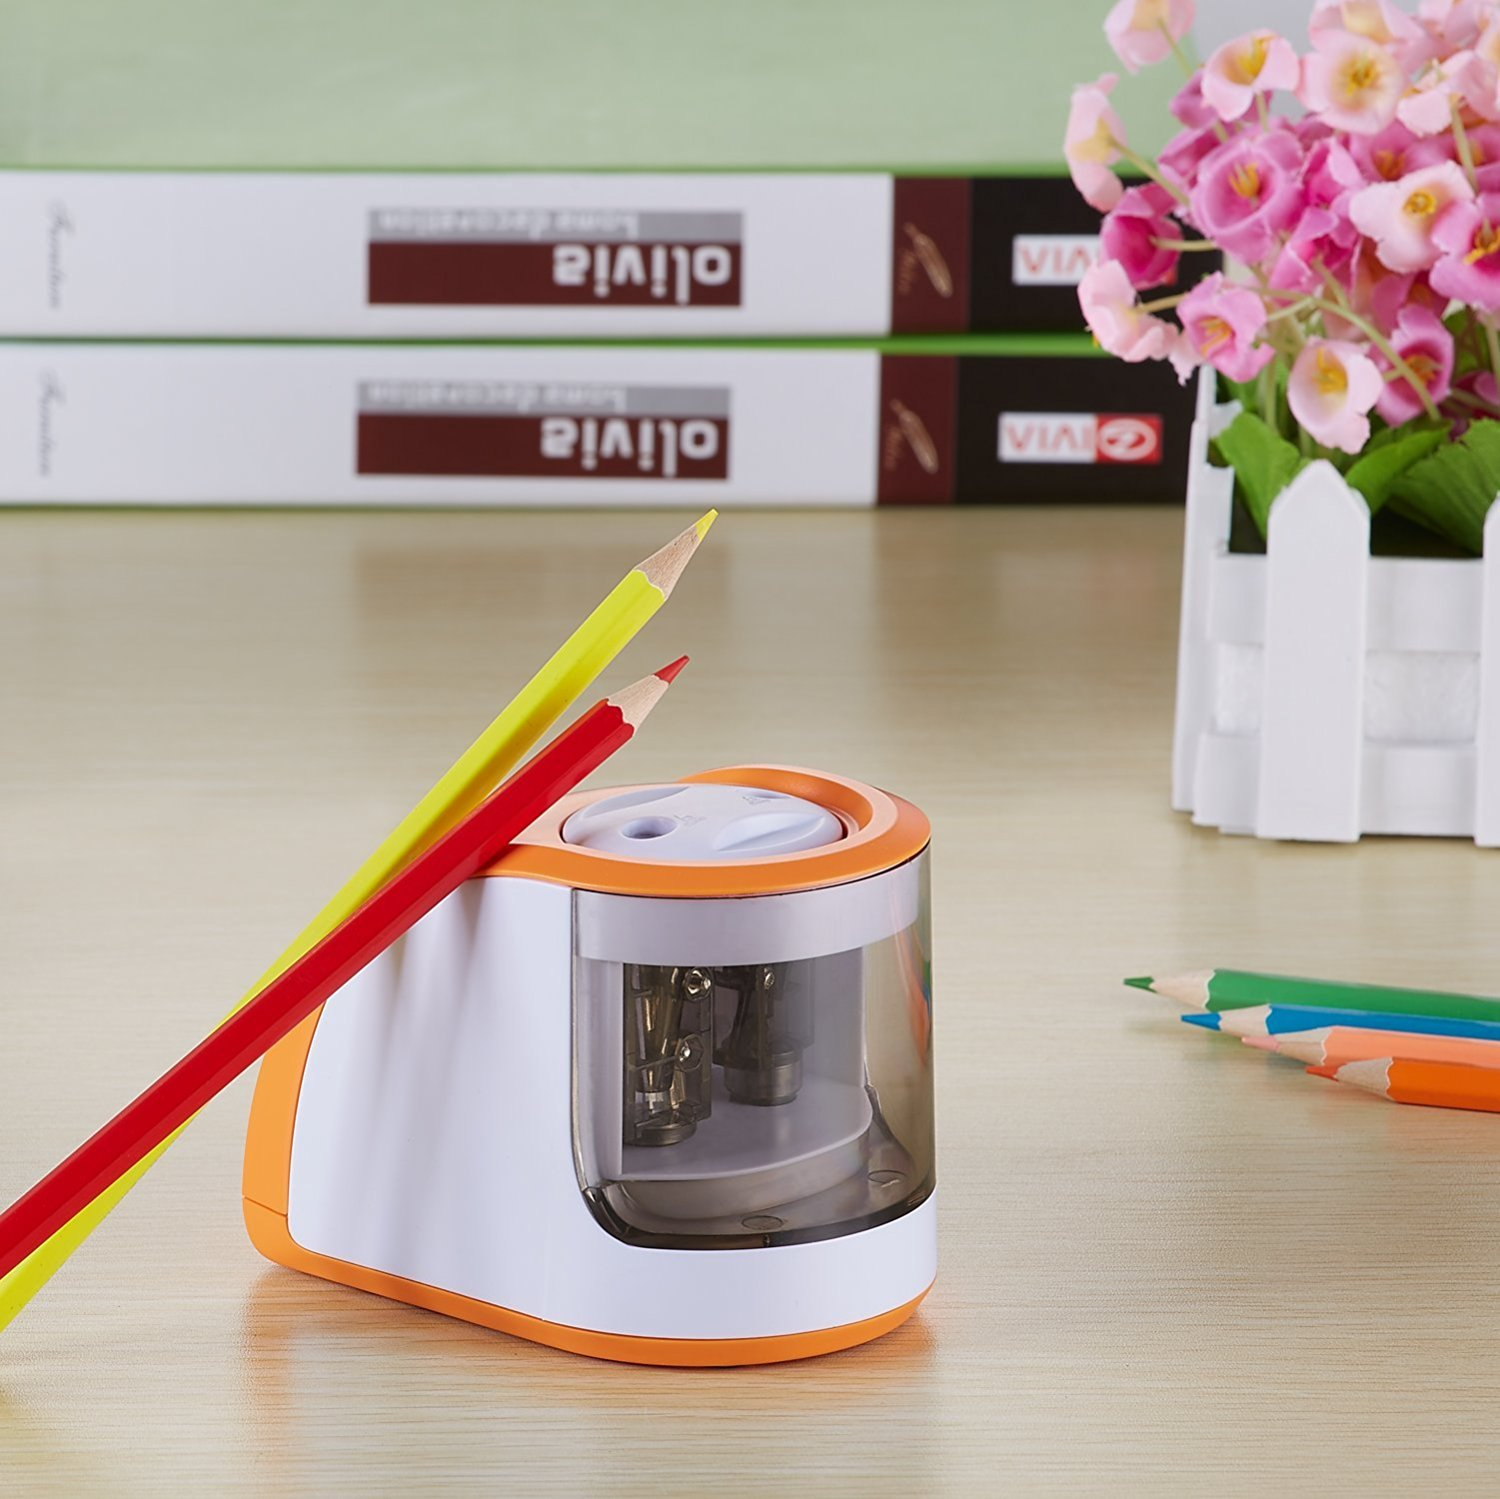 Reliatronic Electric Pencil Sharpener with 2 Holes, Especially Suitable for Colored Pencils, Both AC Powered and Battery Operated, Orange